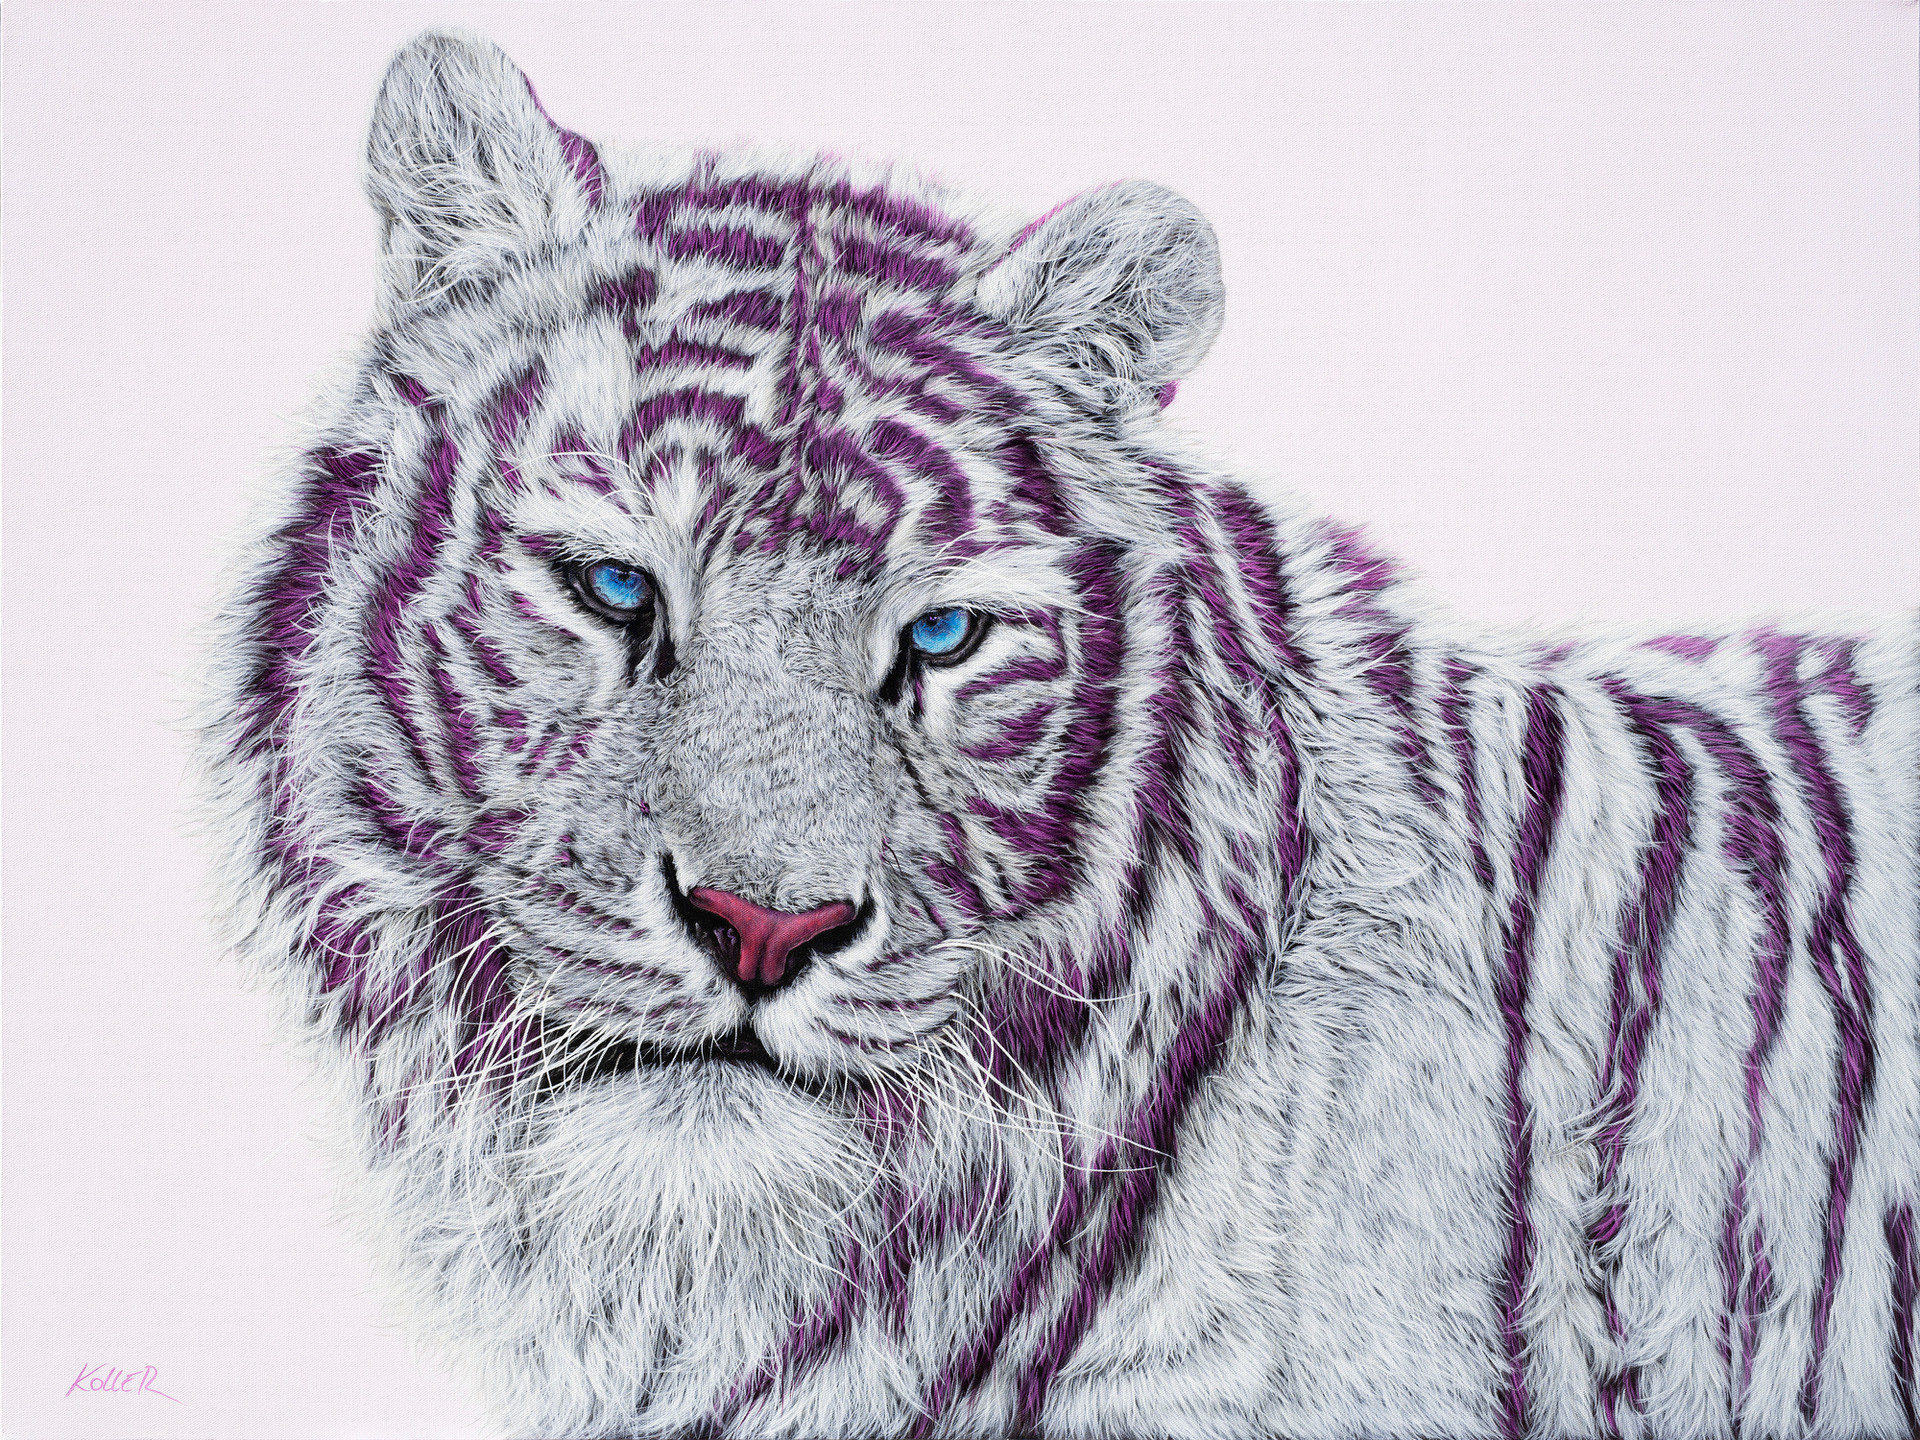 TIGER WITH MAGENTA STRIPES, 2019